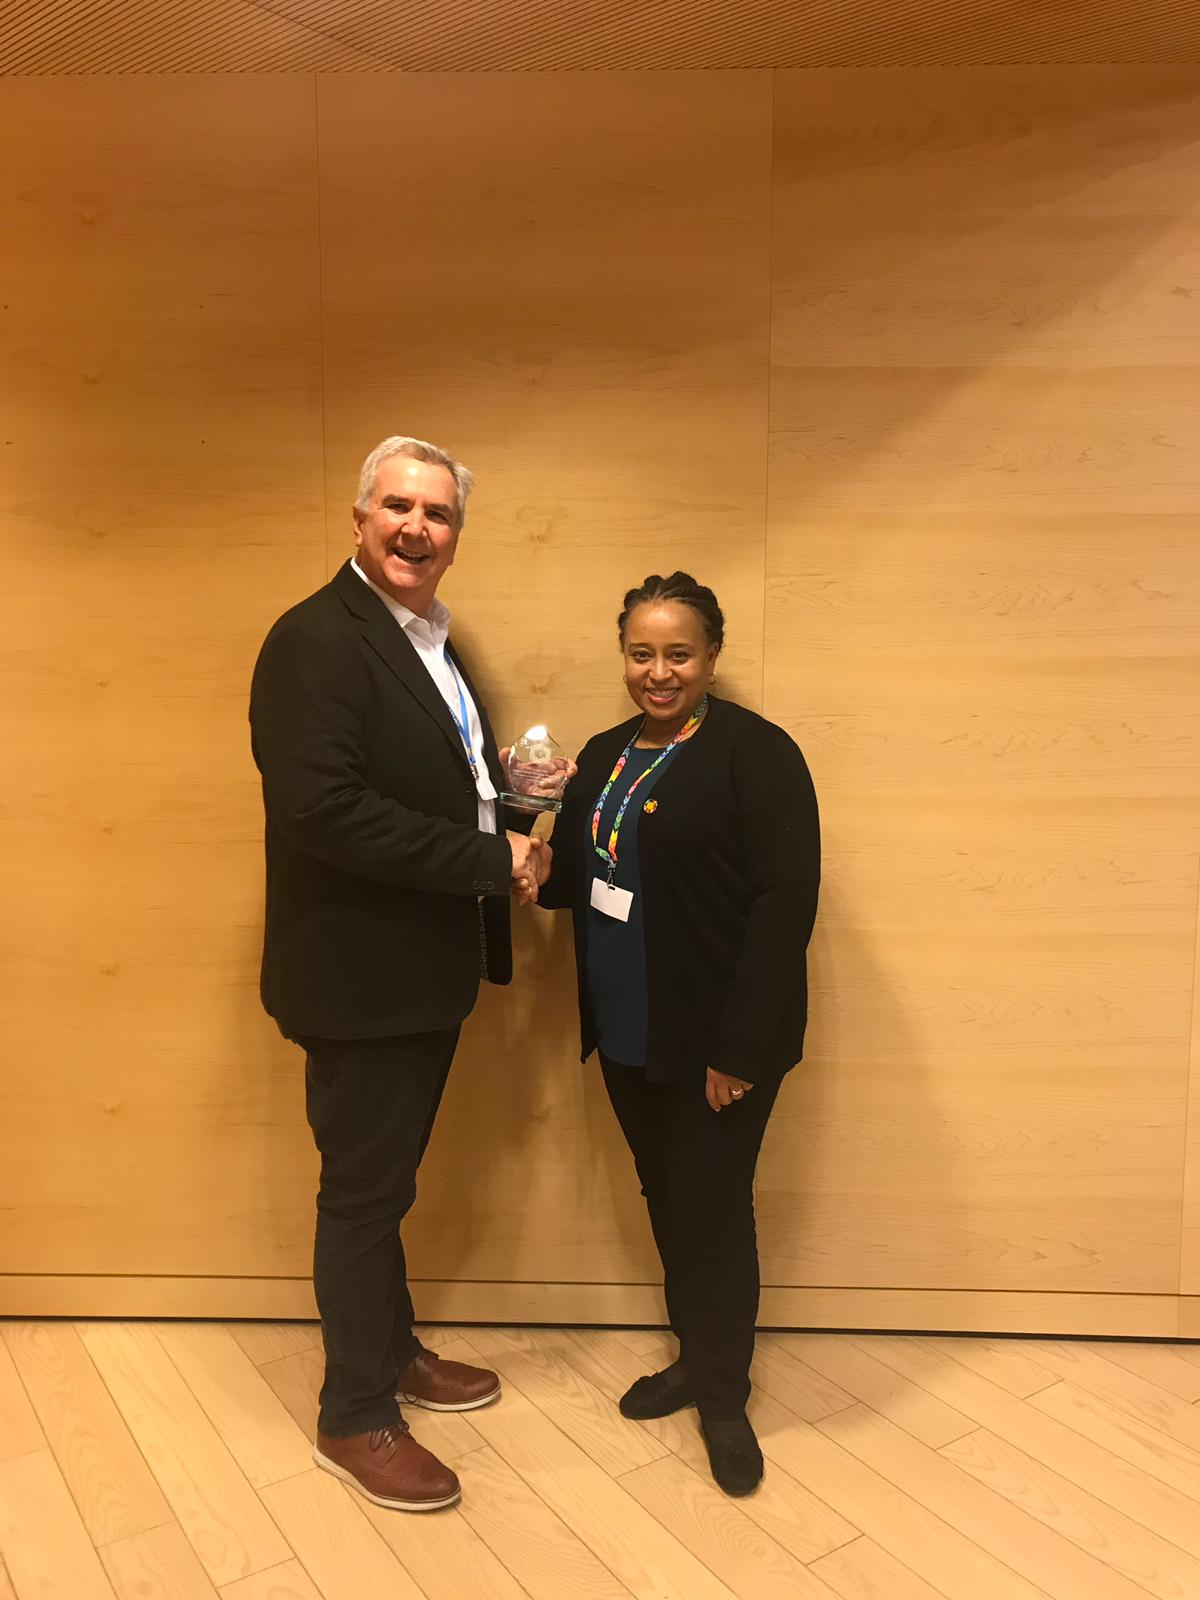 IETA CEO Dirk Forrister presents the Carbon Pricing Champion award to Angela Churie Kallhauge, Head of the CPLC Secretariat.